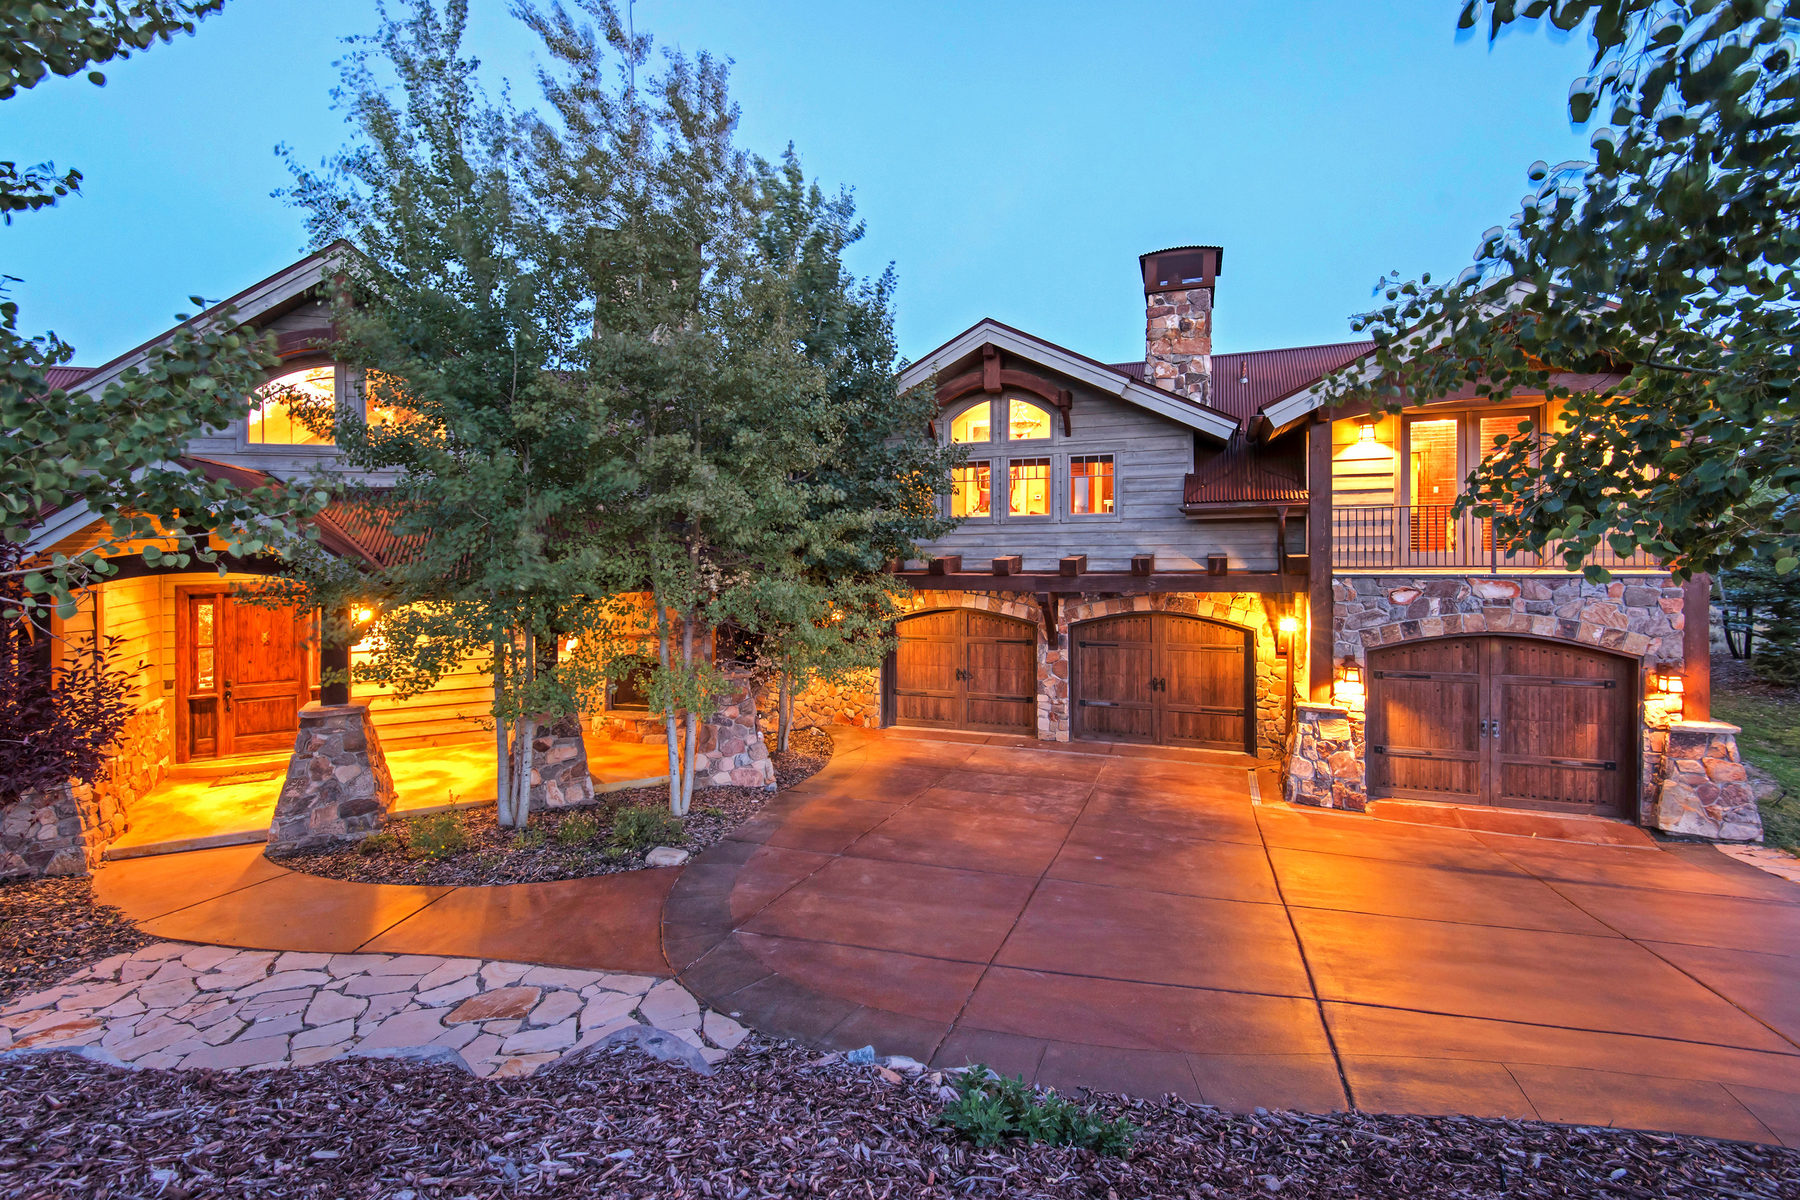 Casa Unifamiliar por un Venta en Traditional Elegance In Promontory's Most Exclusive Neighborhood 8450 N Sunrise Lp Park City, Utah, 84098 Estados Unidos